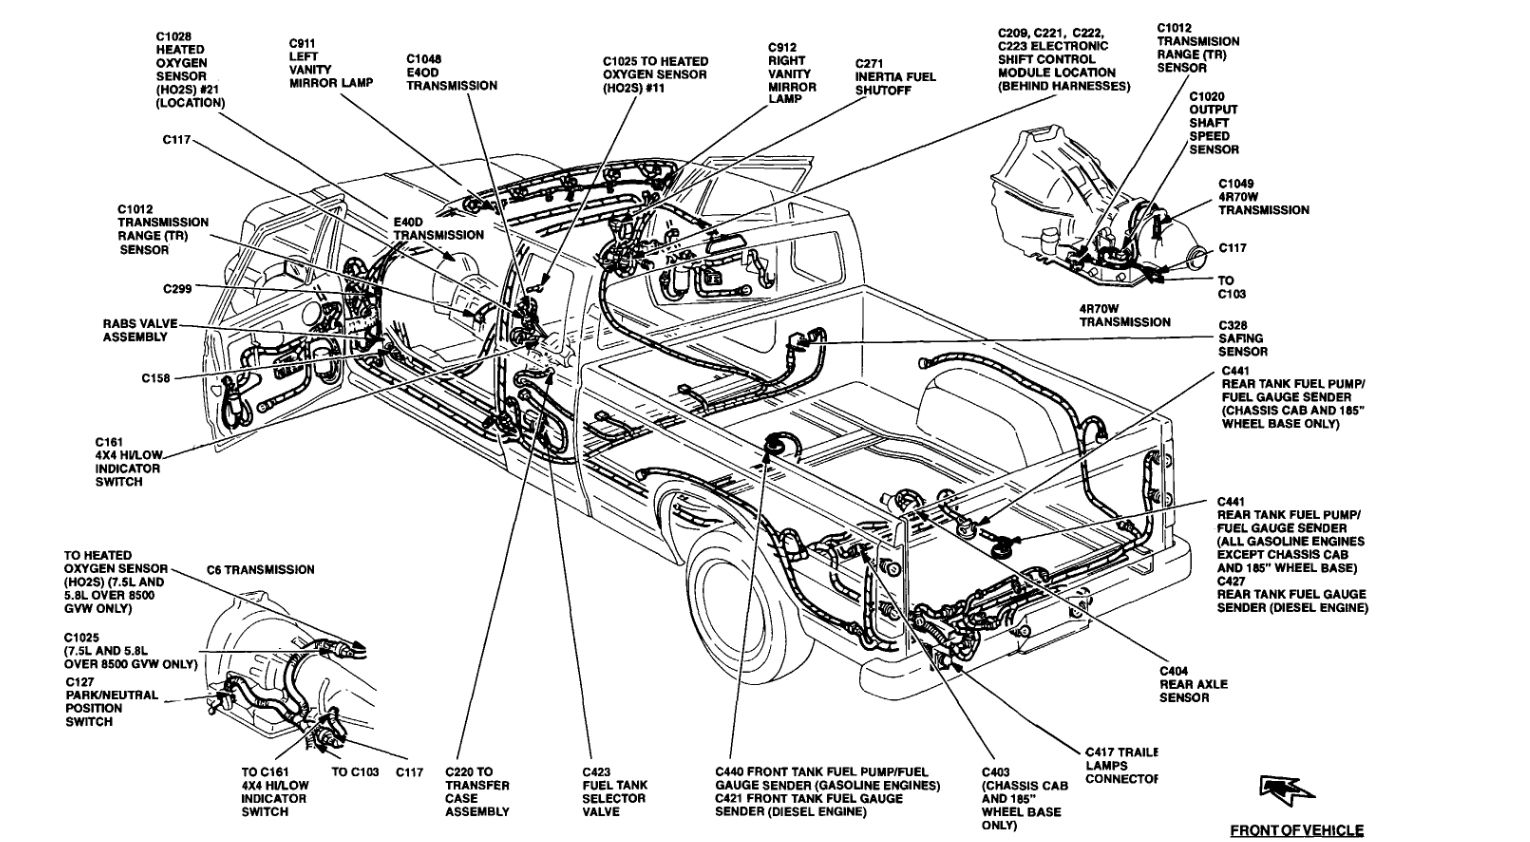 1989 Ford F 150 Rear Tank Fuel System Diagram Bookmark Fuel System